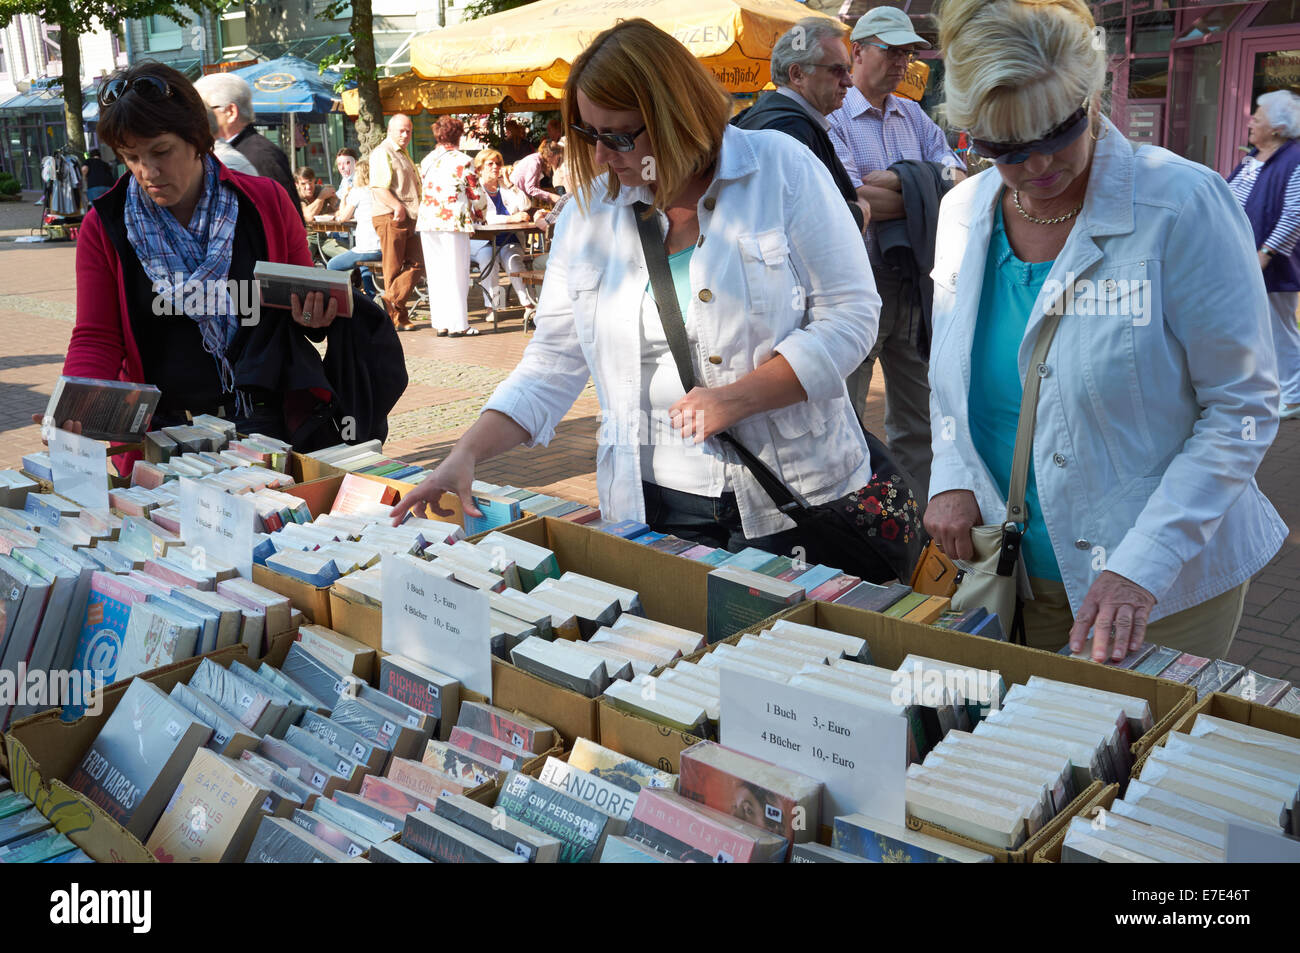 Secondhand books for sales at a flea market, Leichlingen, Germany. - Stock Image